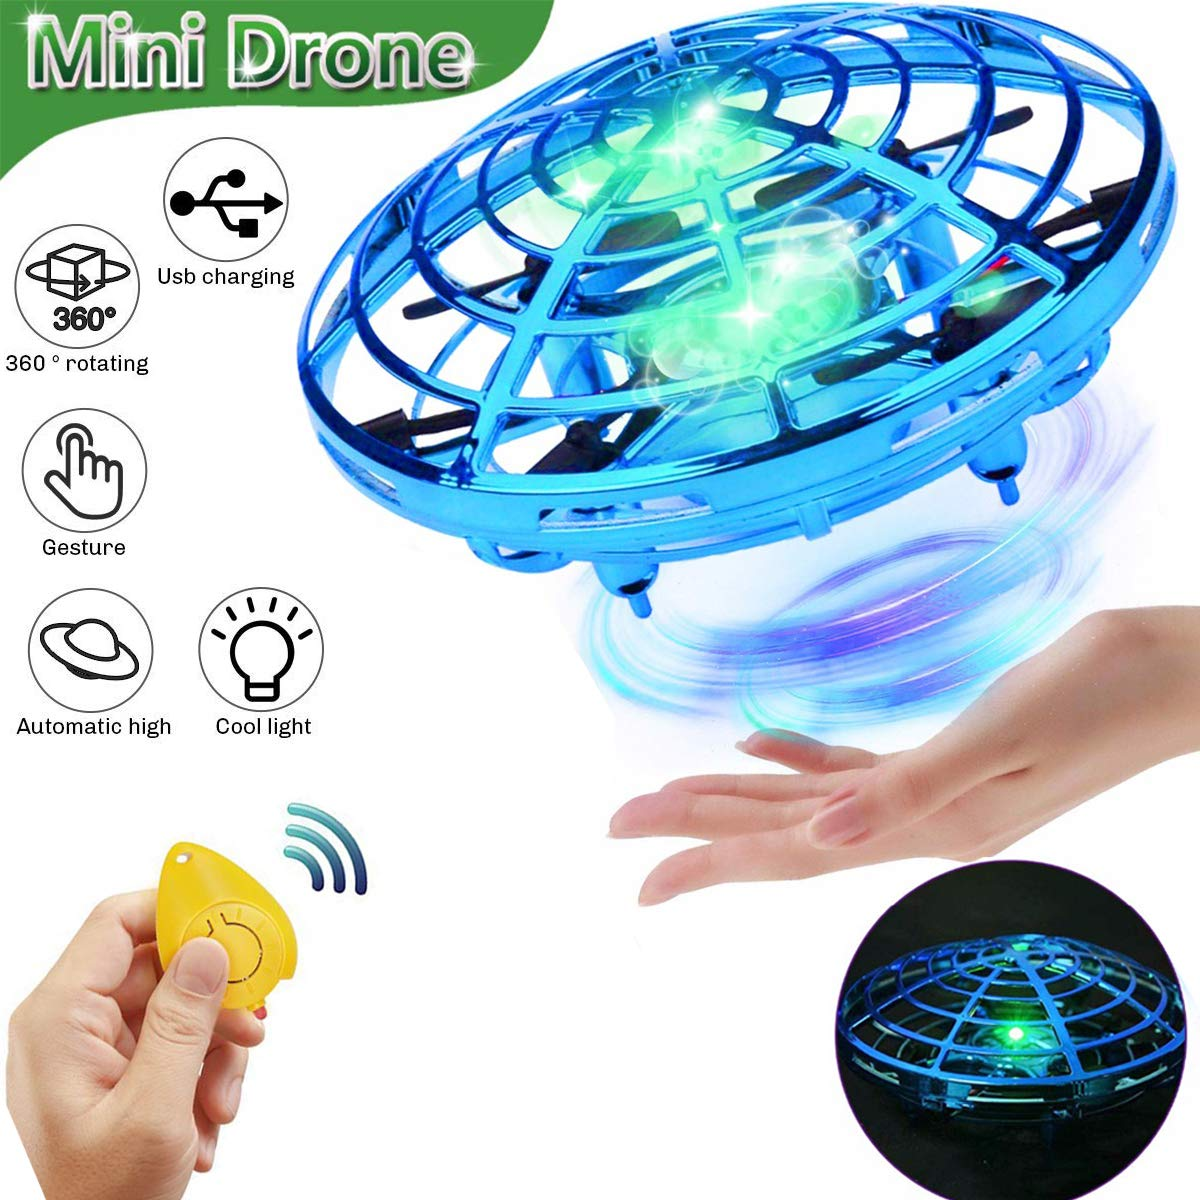 Flying Toy Ball Rc Toys Induction Flying Toy Mini Drones Helicopter Airplane with LED Lights Hand & Remote Controlled for 3+ Kids Girls Boys Indoor and Outdoor Gifts for Birthday (Flying Ball UFO) by HDsuit (Image #1)